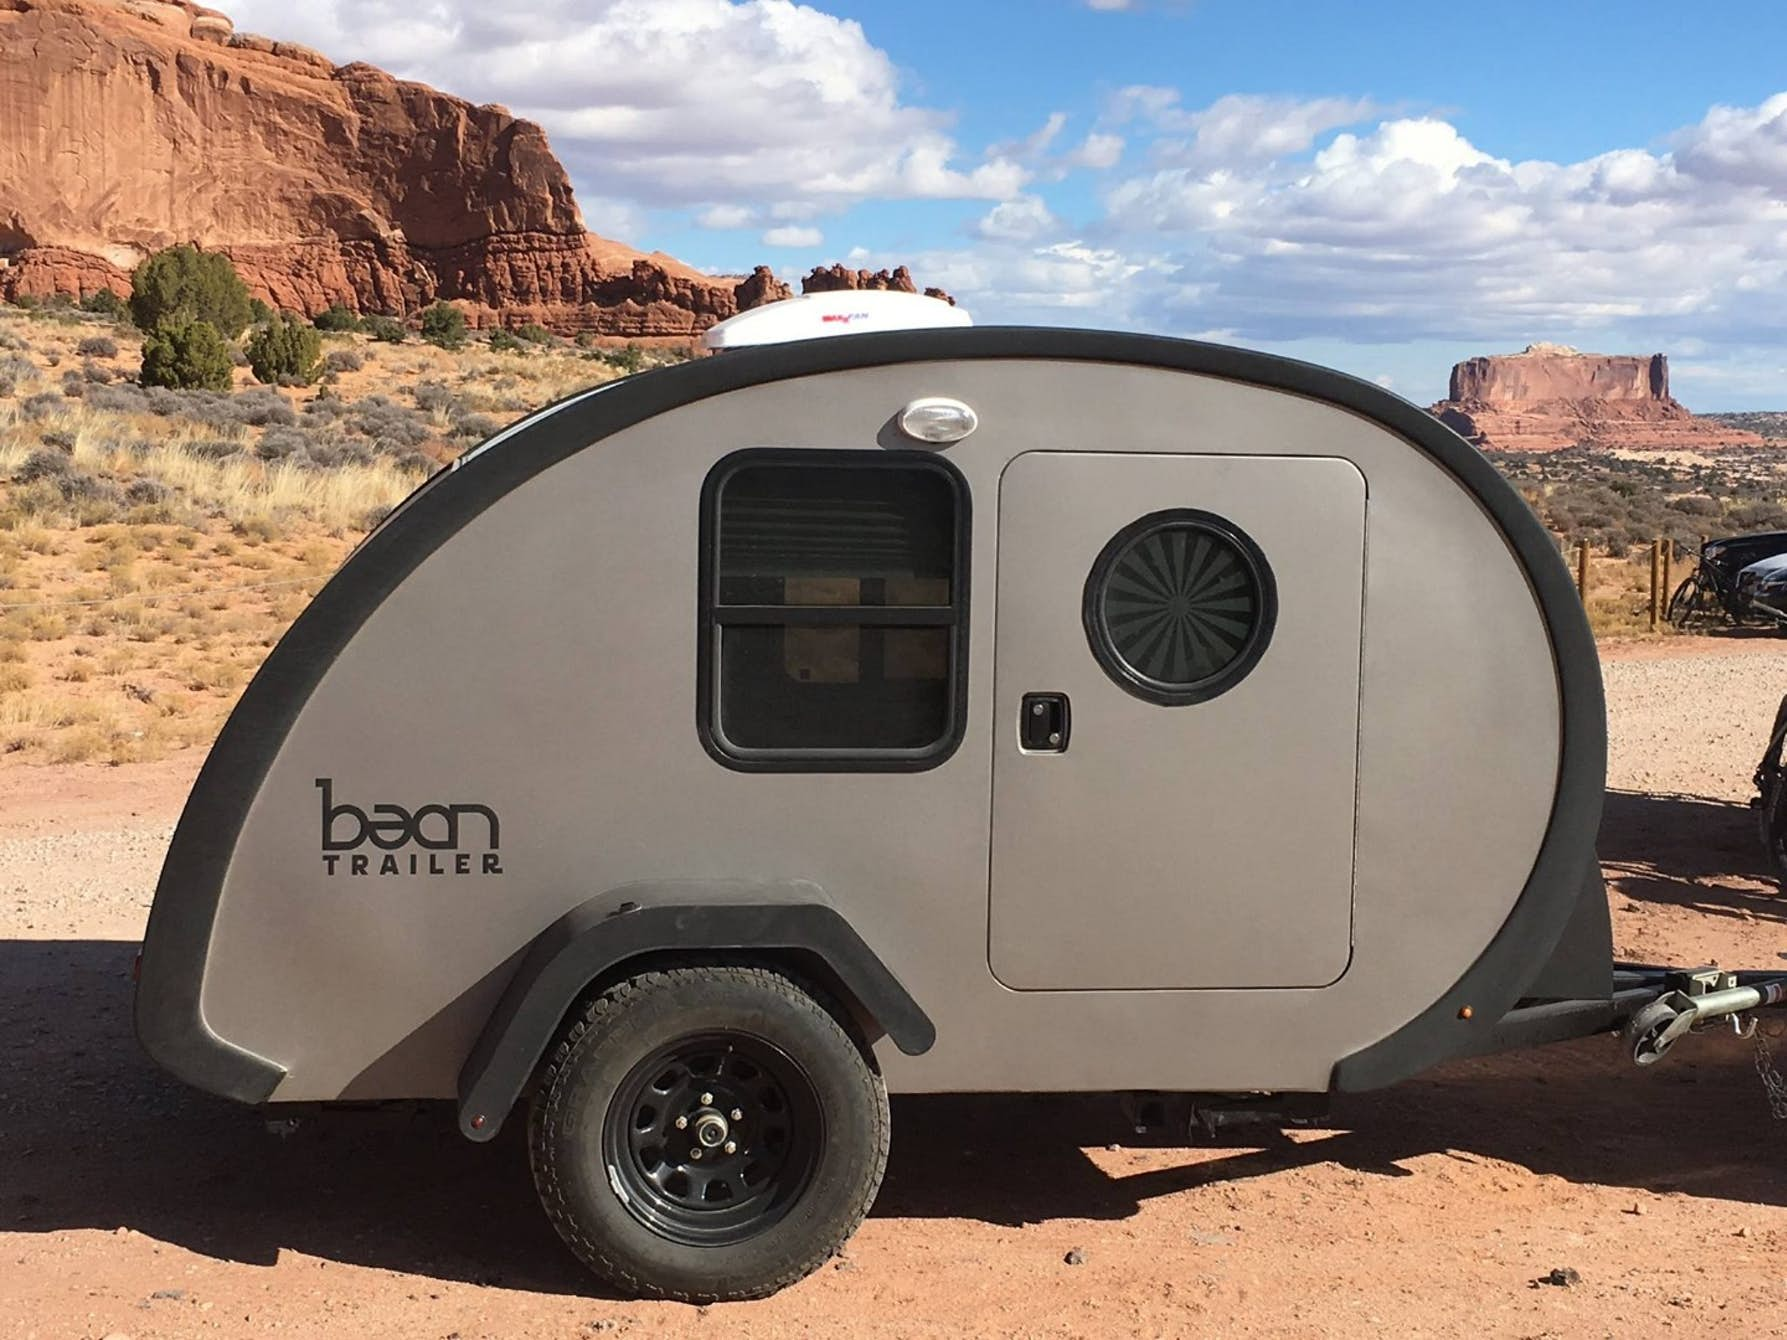 Upscale teardrop trailer is a tiny home on the go - Curbed